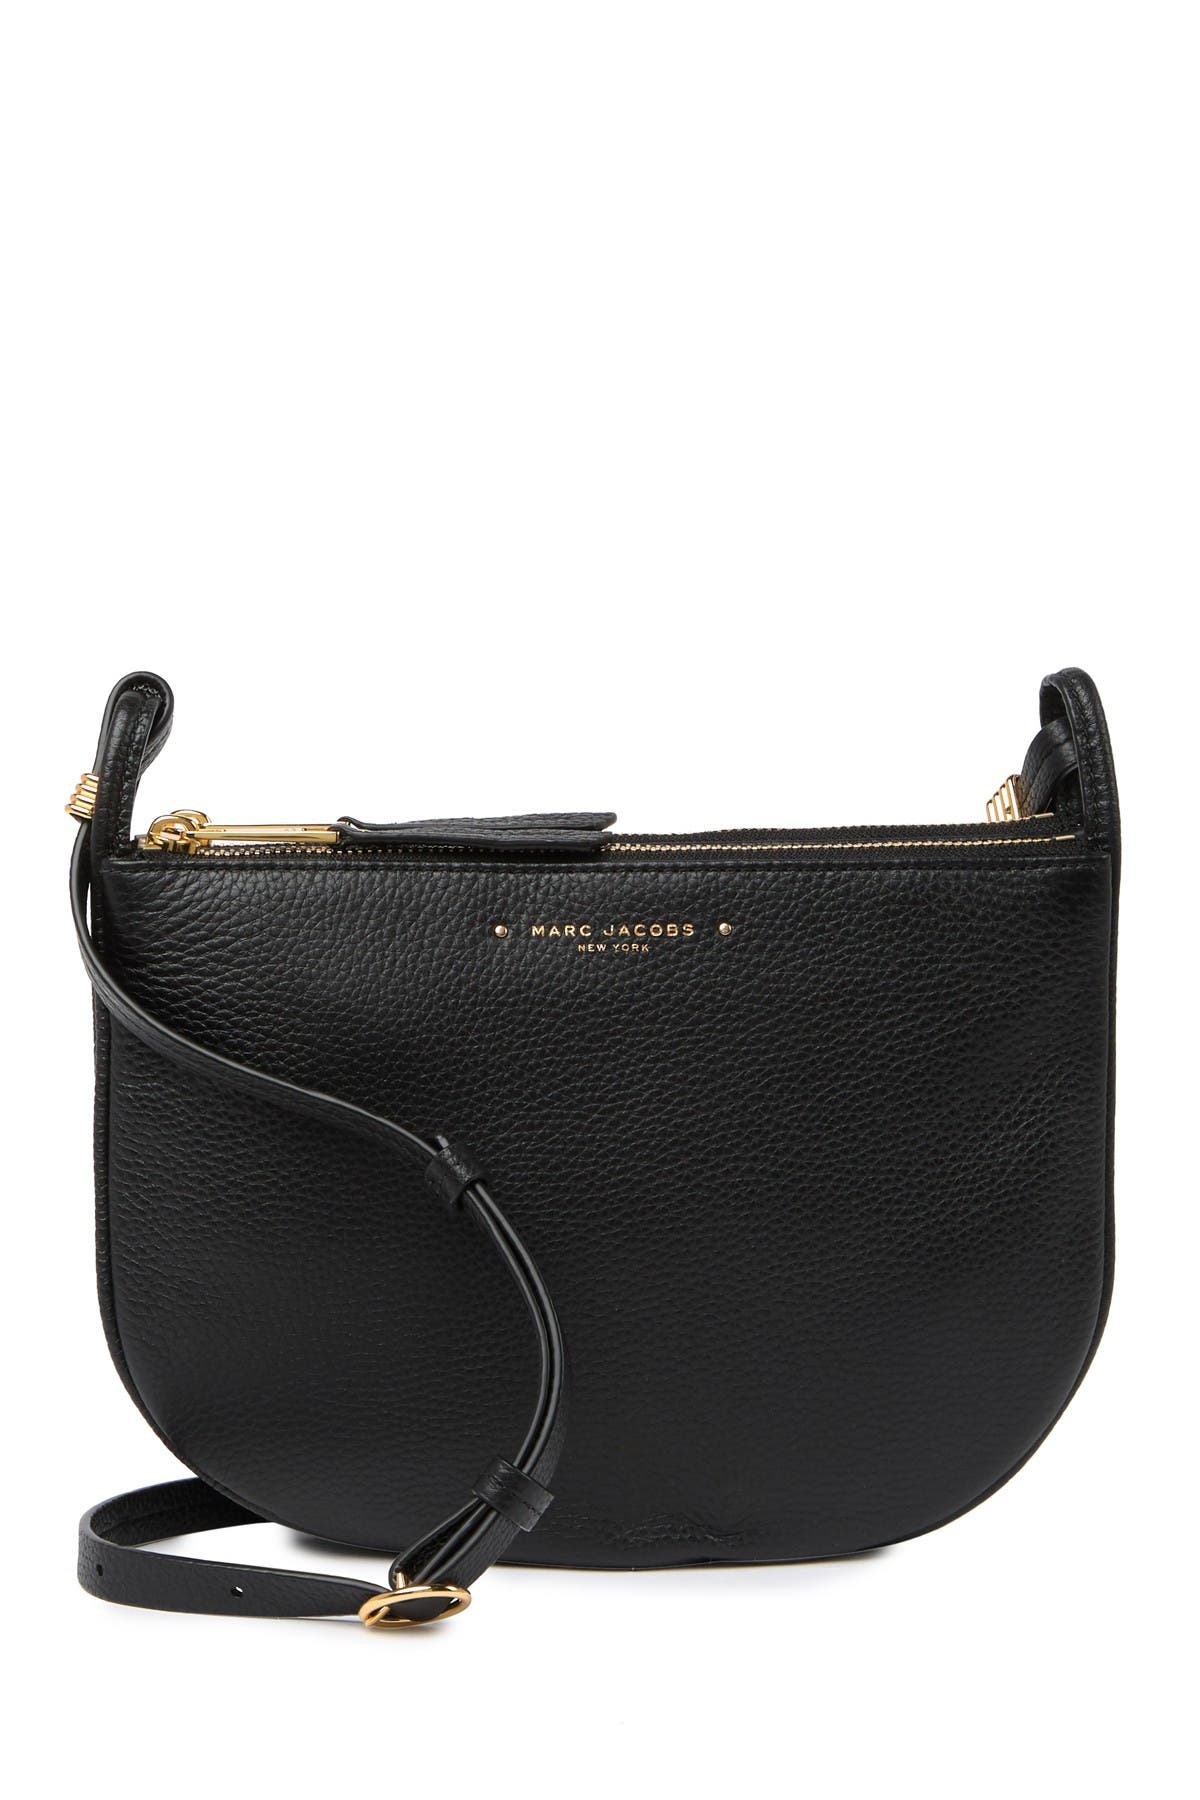 Yours Clothing Womens Black Bow Detail Cross Body Bag